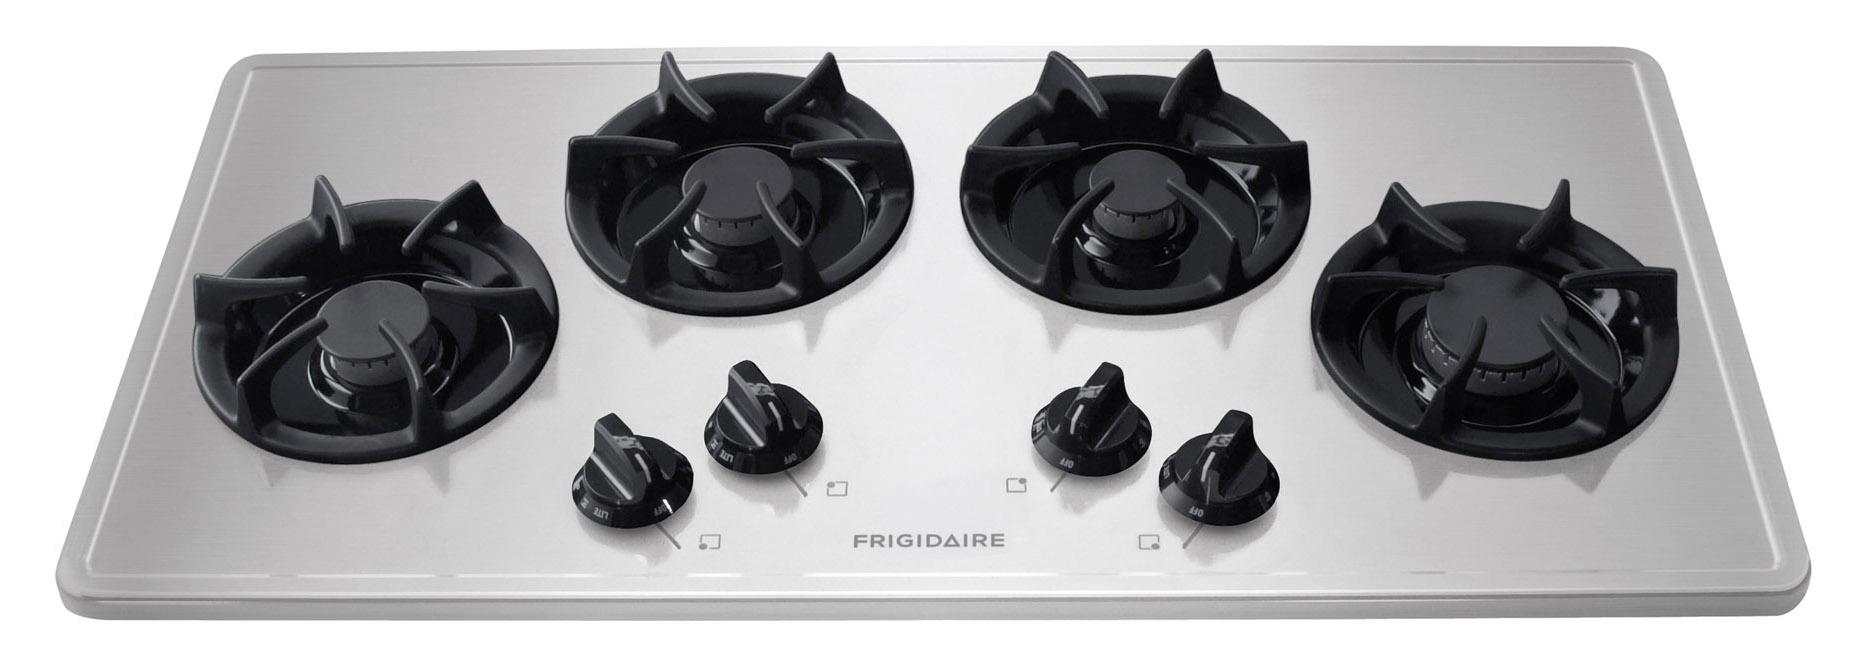 "Frigidaire Gas Cooktop 36"" Built-In Gas Cooktop - Item Number: FFGC3613LS"